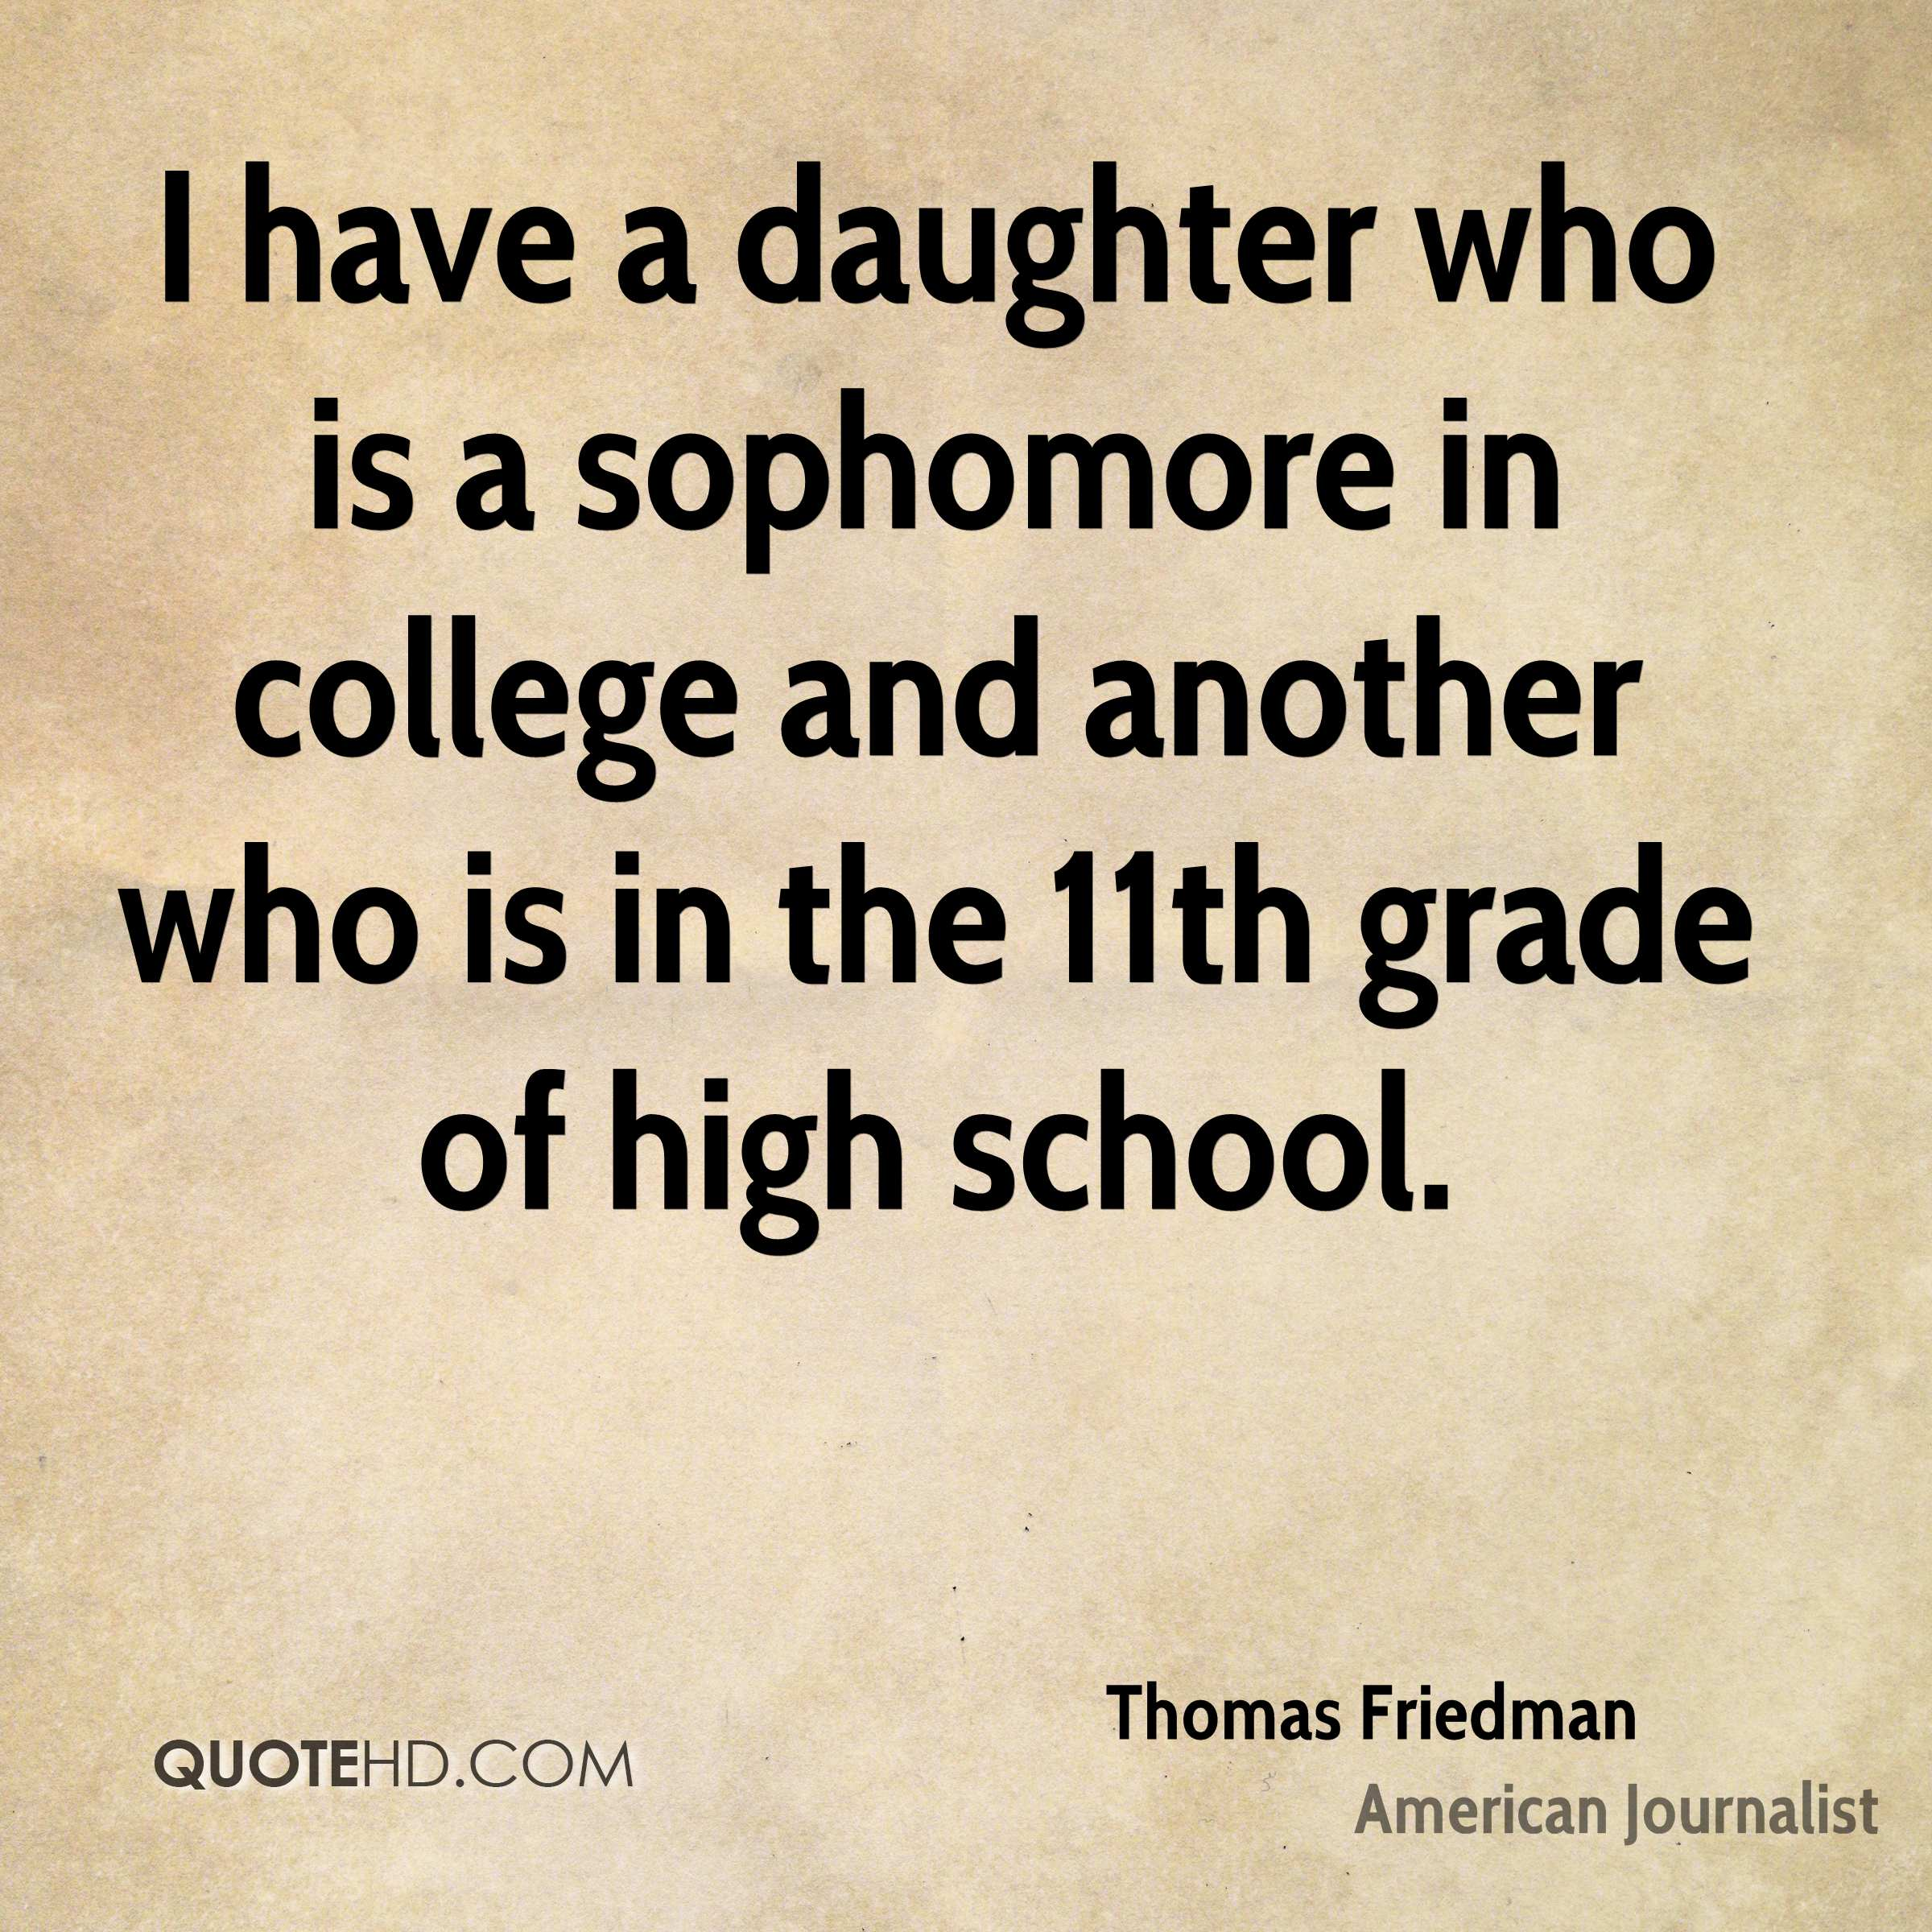 I have a daughter who is a sophomore in college and another who is in the 11th grade of high school.